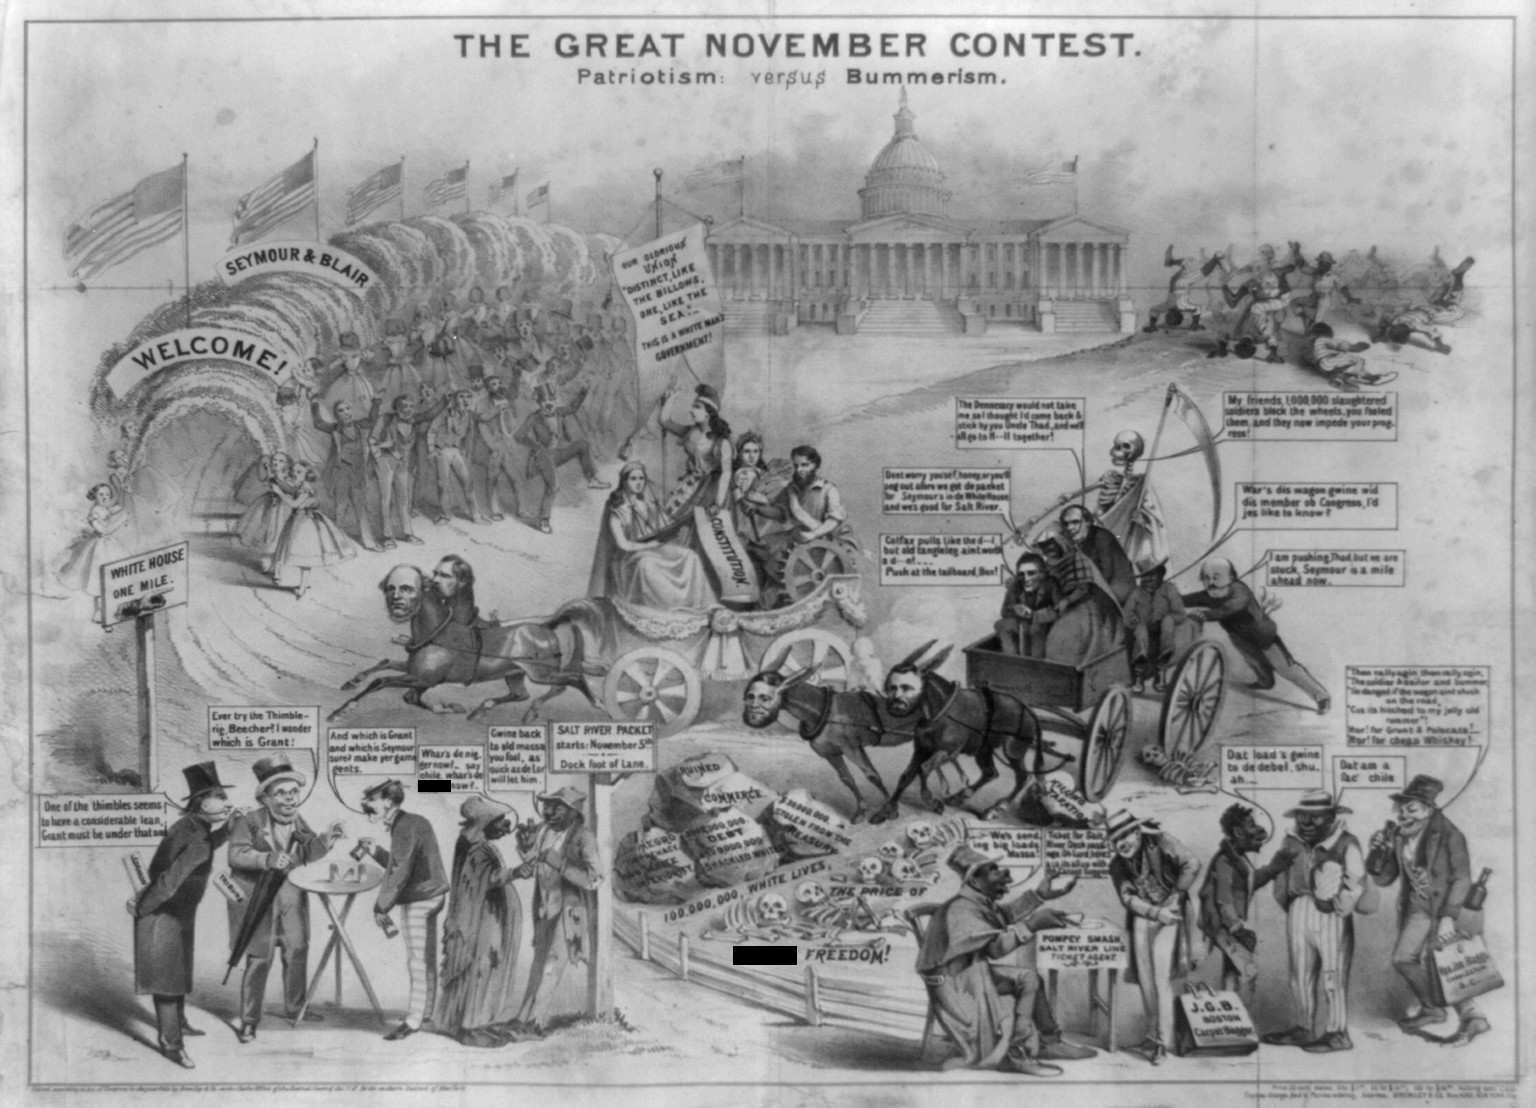 2011 03 01 archive besides Us history maps furthermore Conquête de l'Ouest also Bank War besides Indian Removal Act Political Cartoon Andrew Jackson. on indian removal act of 1836